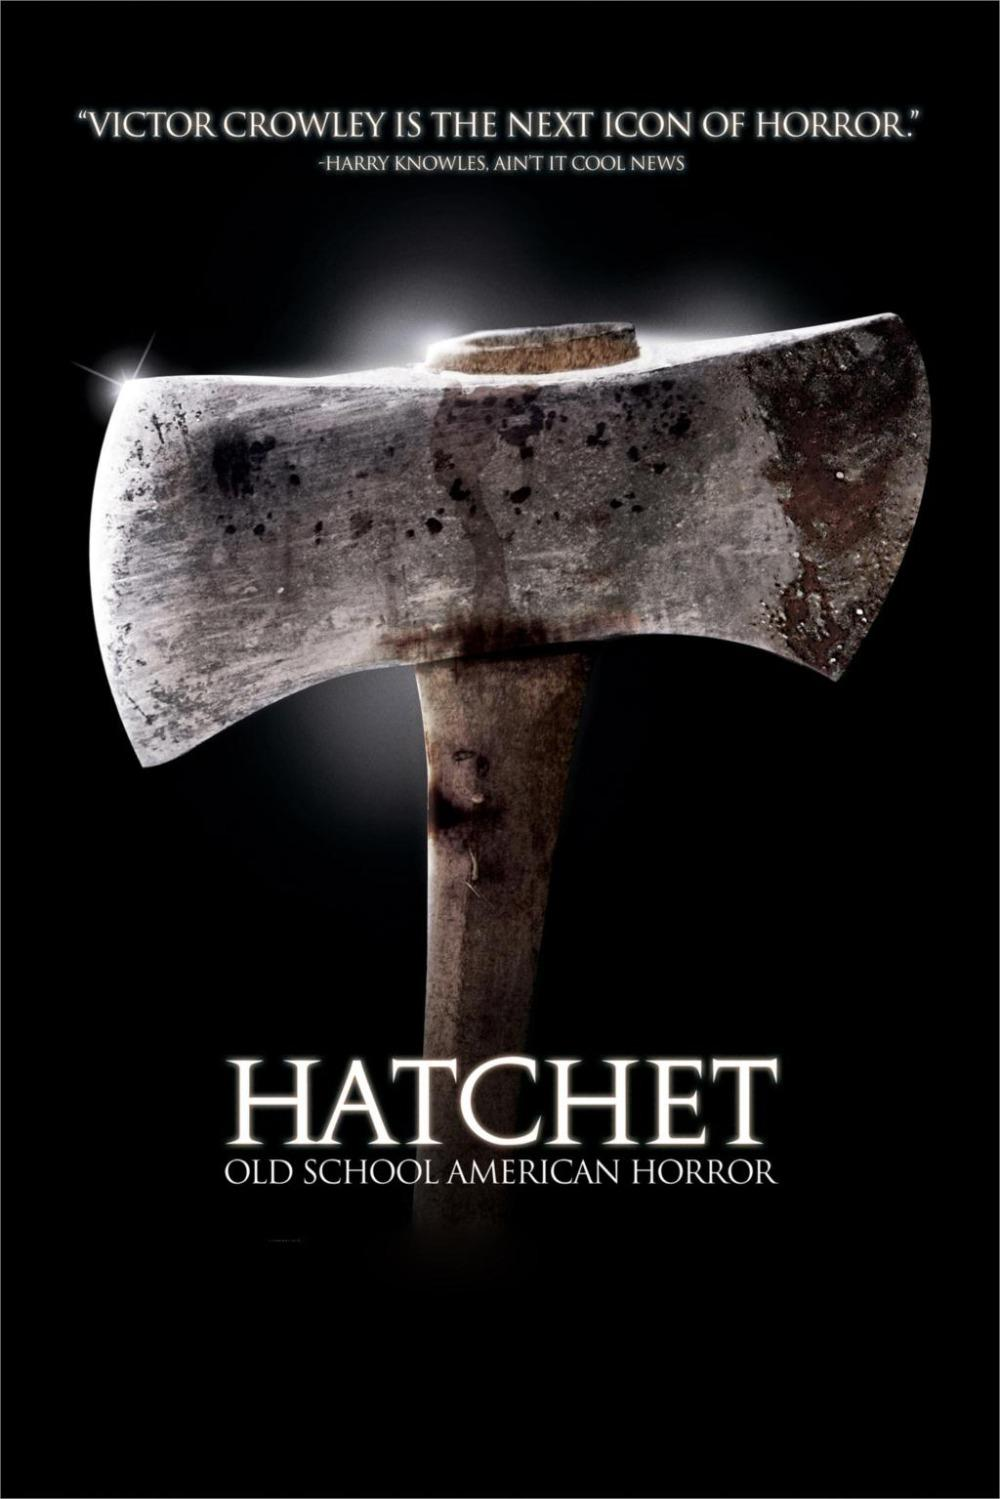 hatchet-old-school-american-horror-movie.jpg